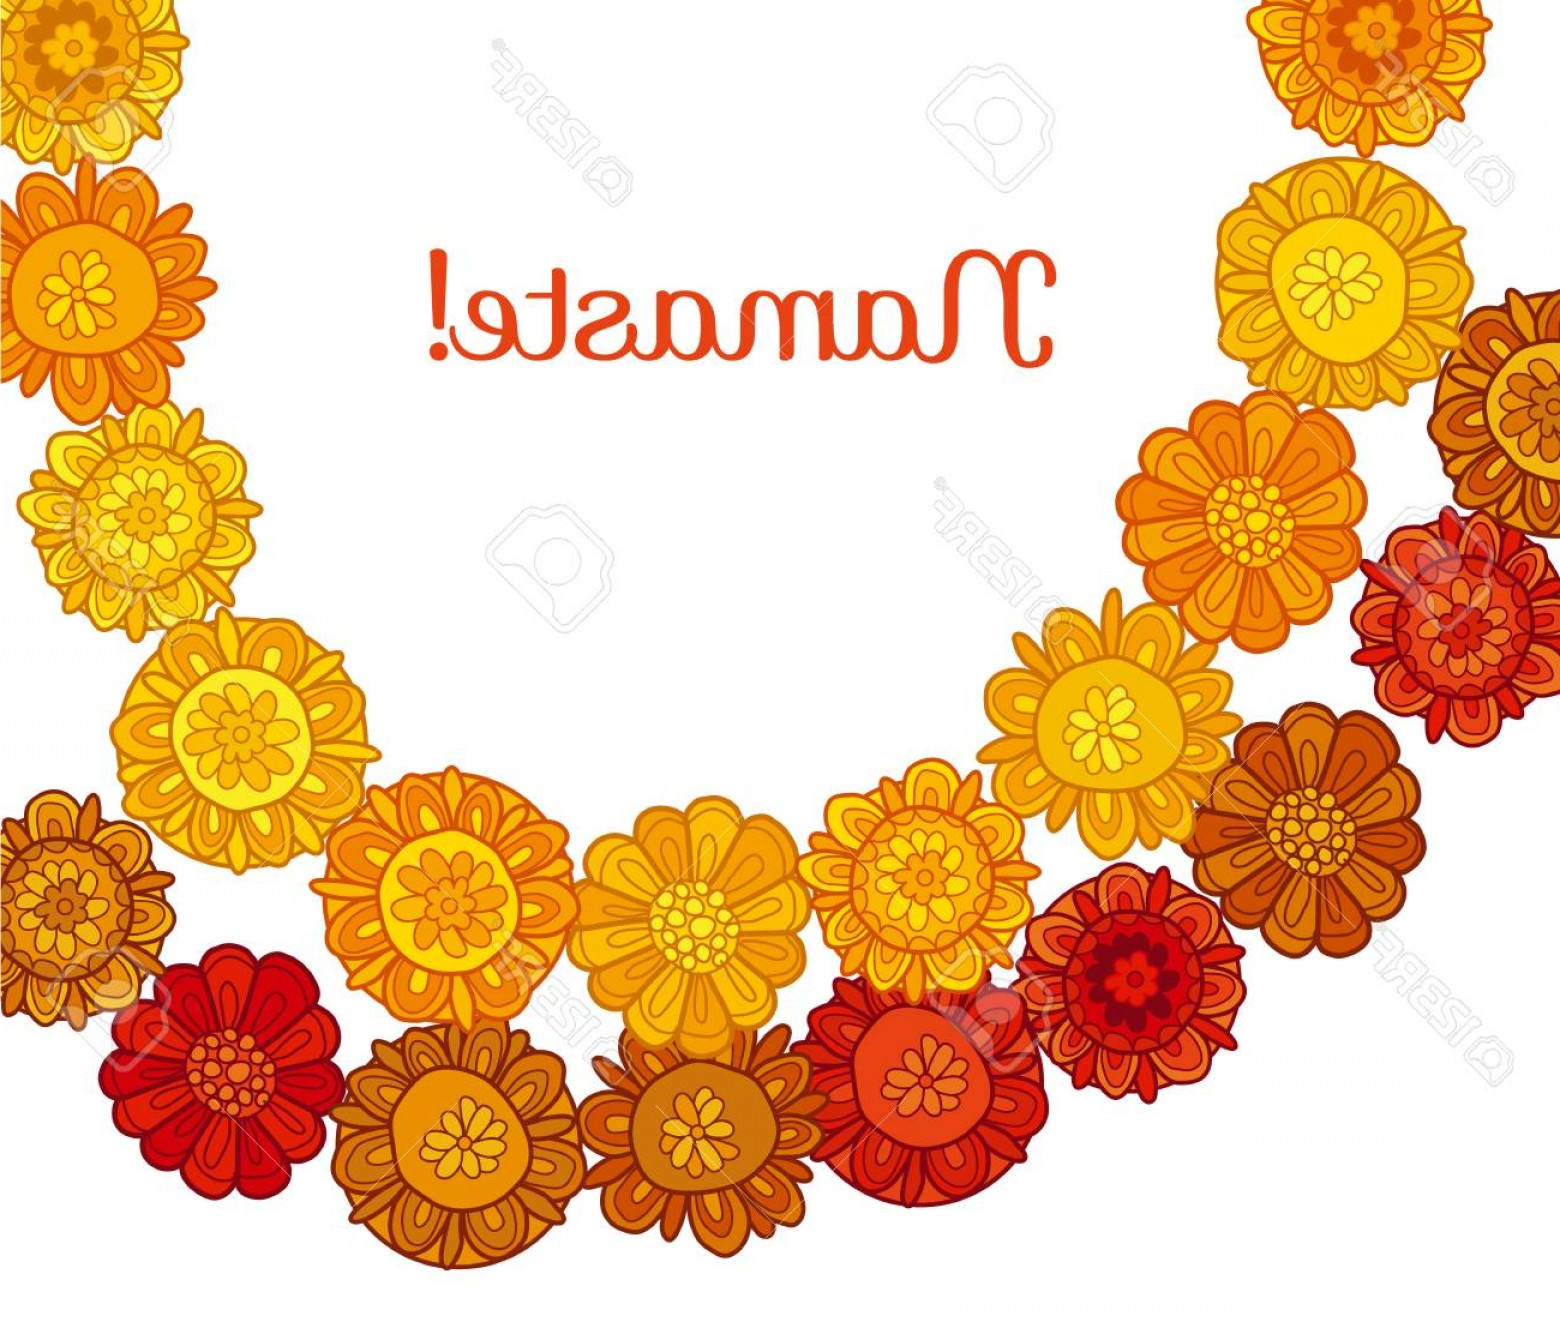 Hindu Flower Vector: Photostock Vector Decorative Stylized Marigold Flower Vector Illustration Traditional Rural Indian Floral Garland For